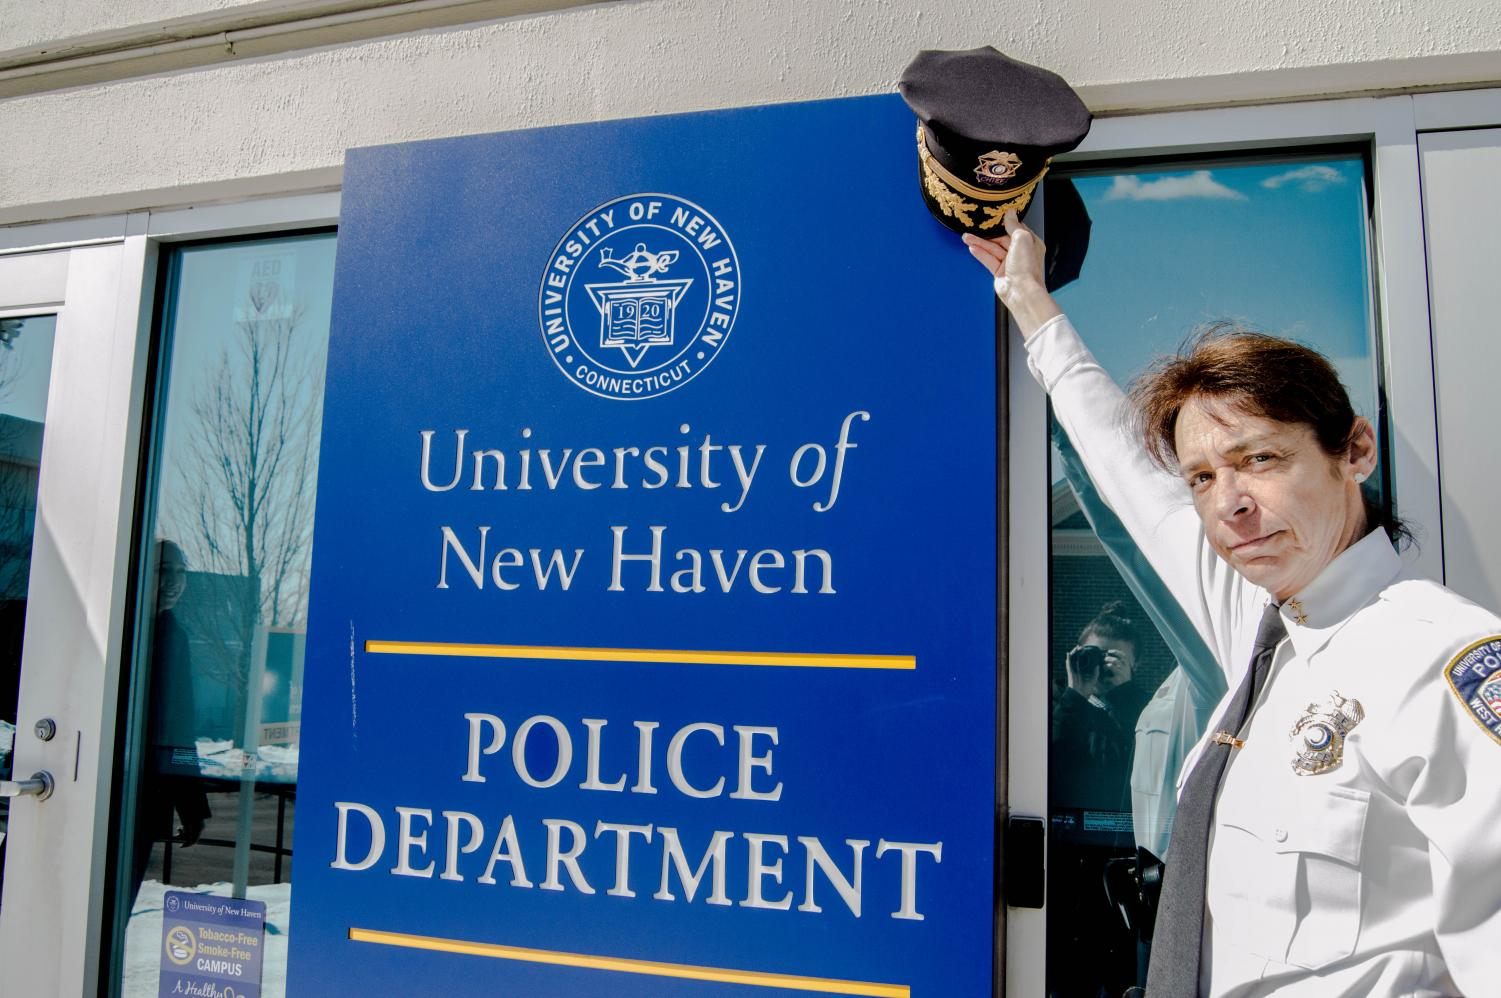 Chief Mooney is ready to hang up her hat in light of her retirement.